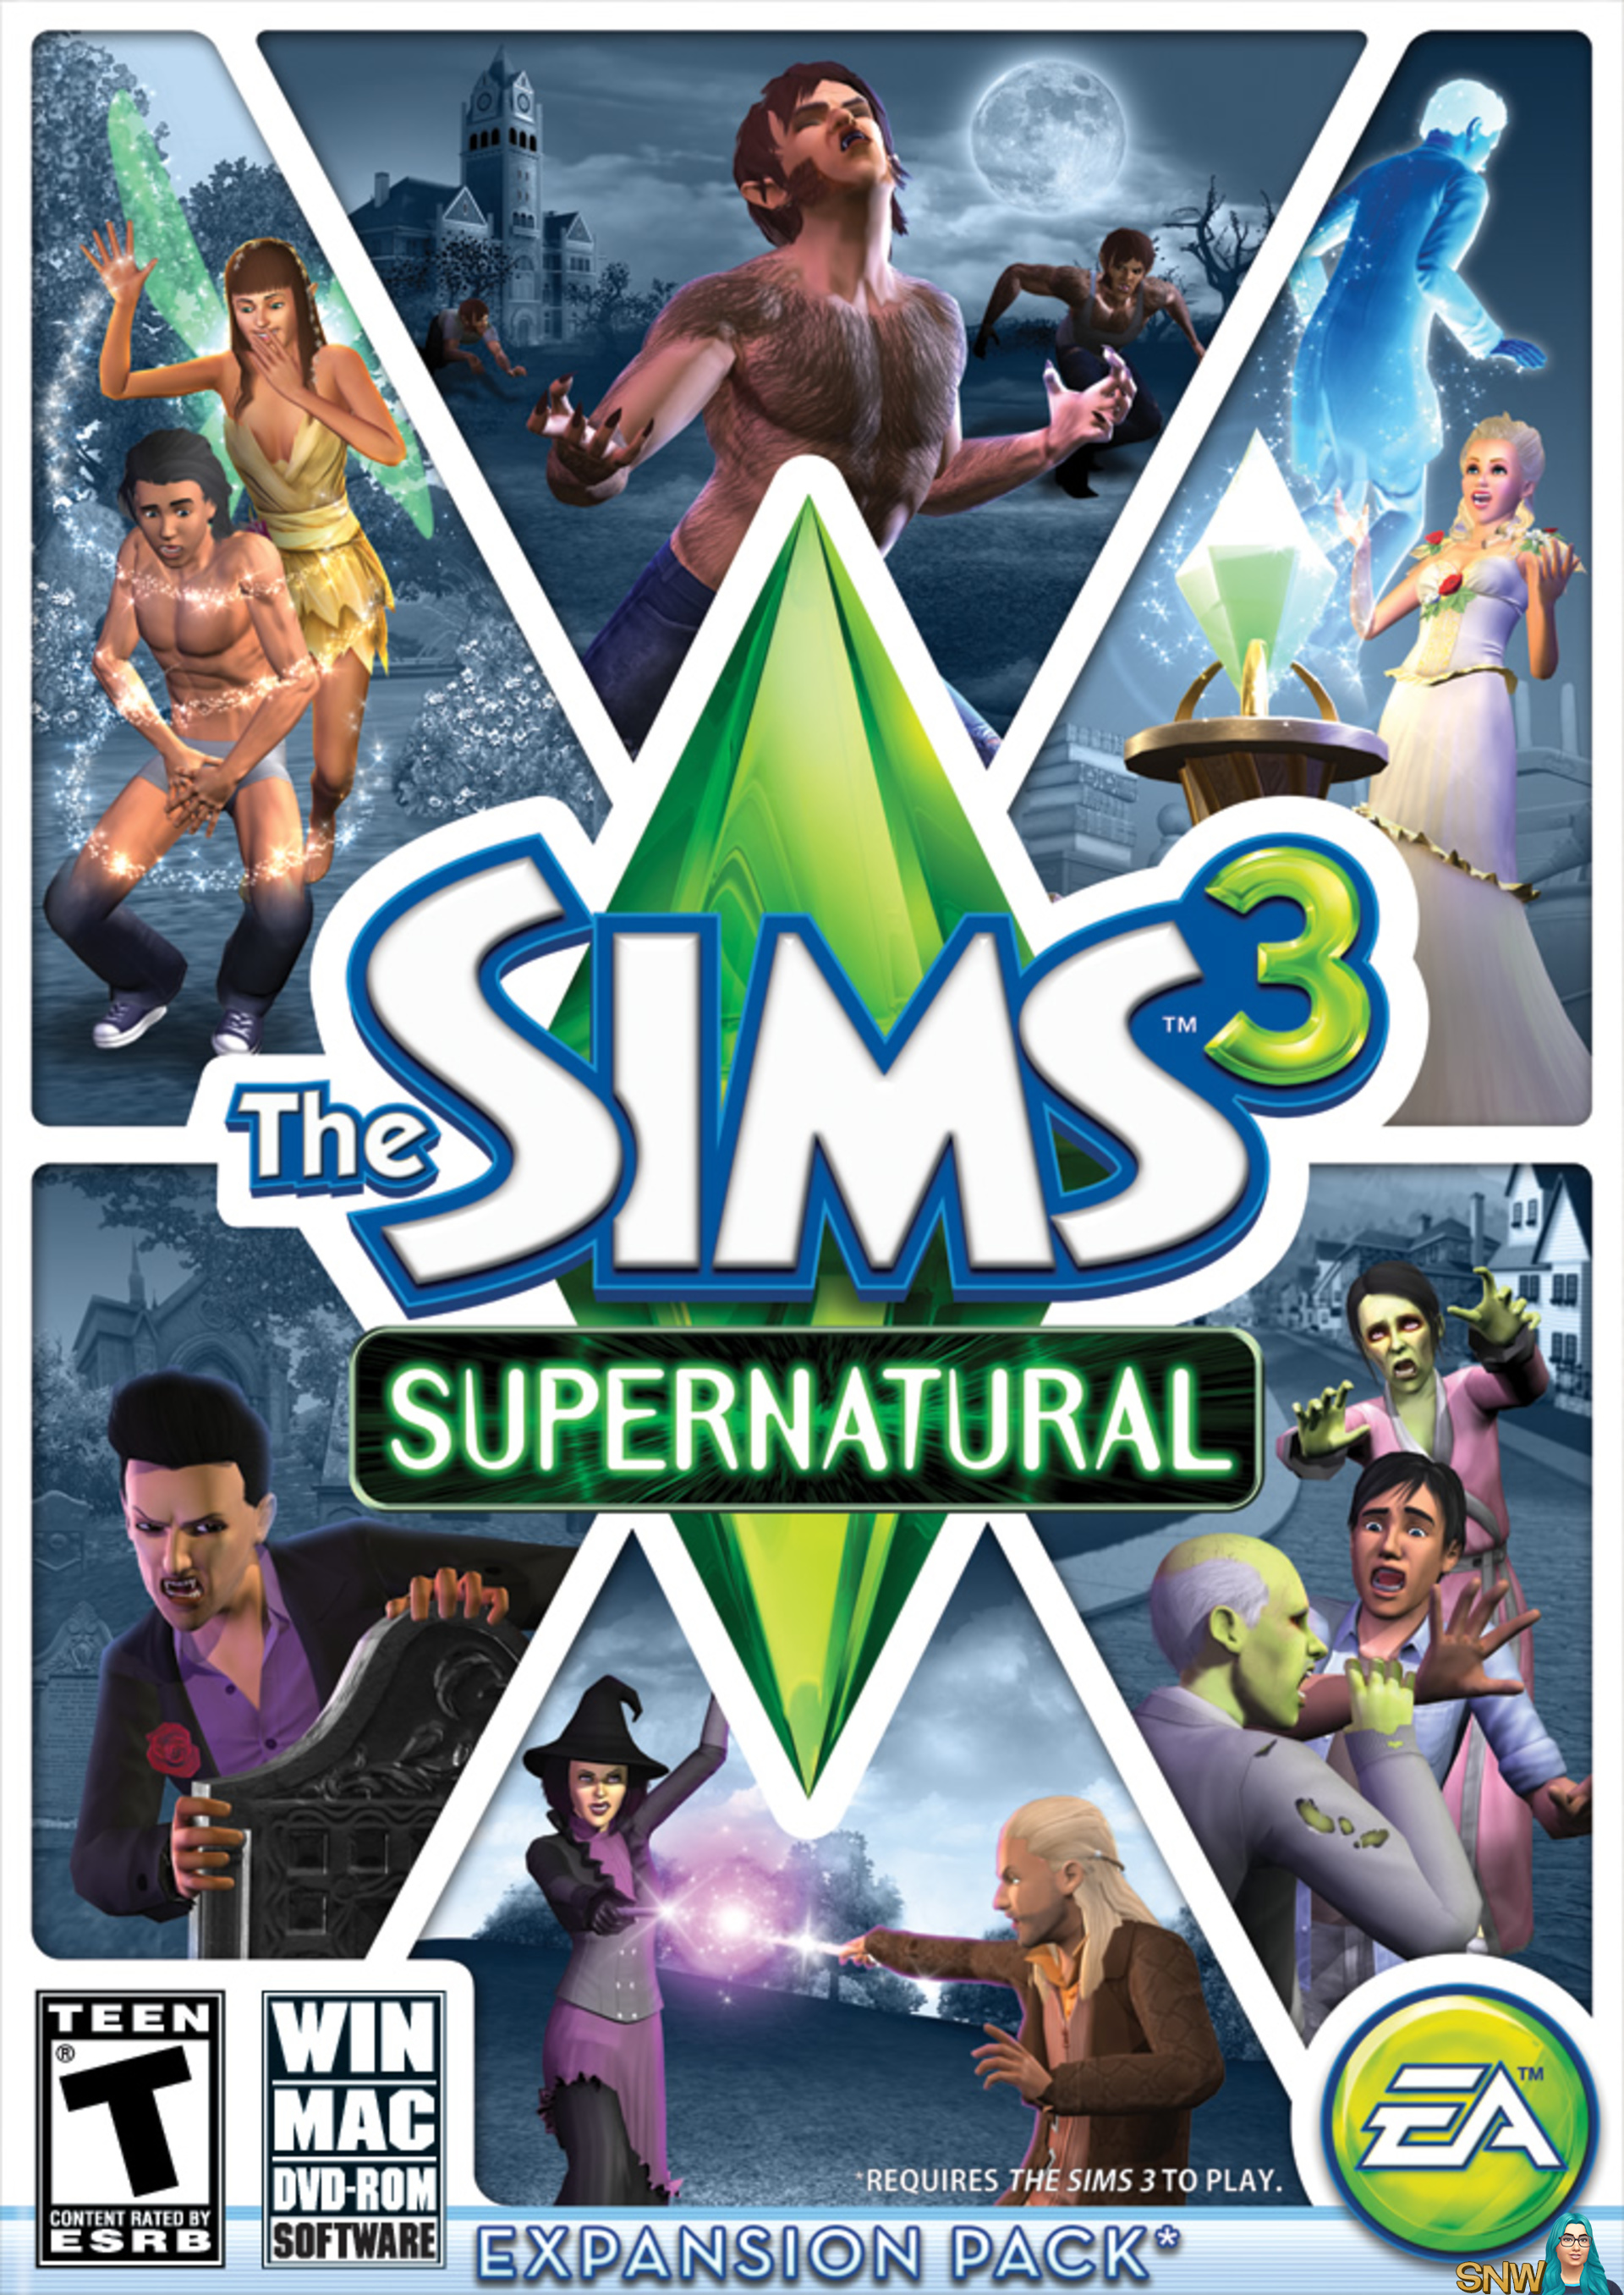 The Sims 3 Supernatural Snw Simsnetwork Com